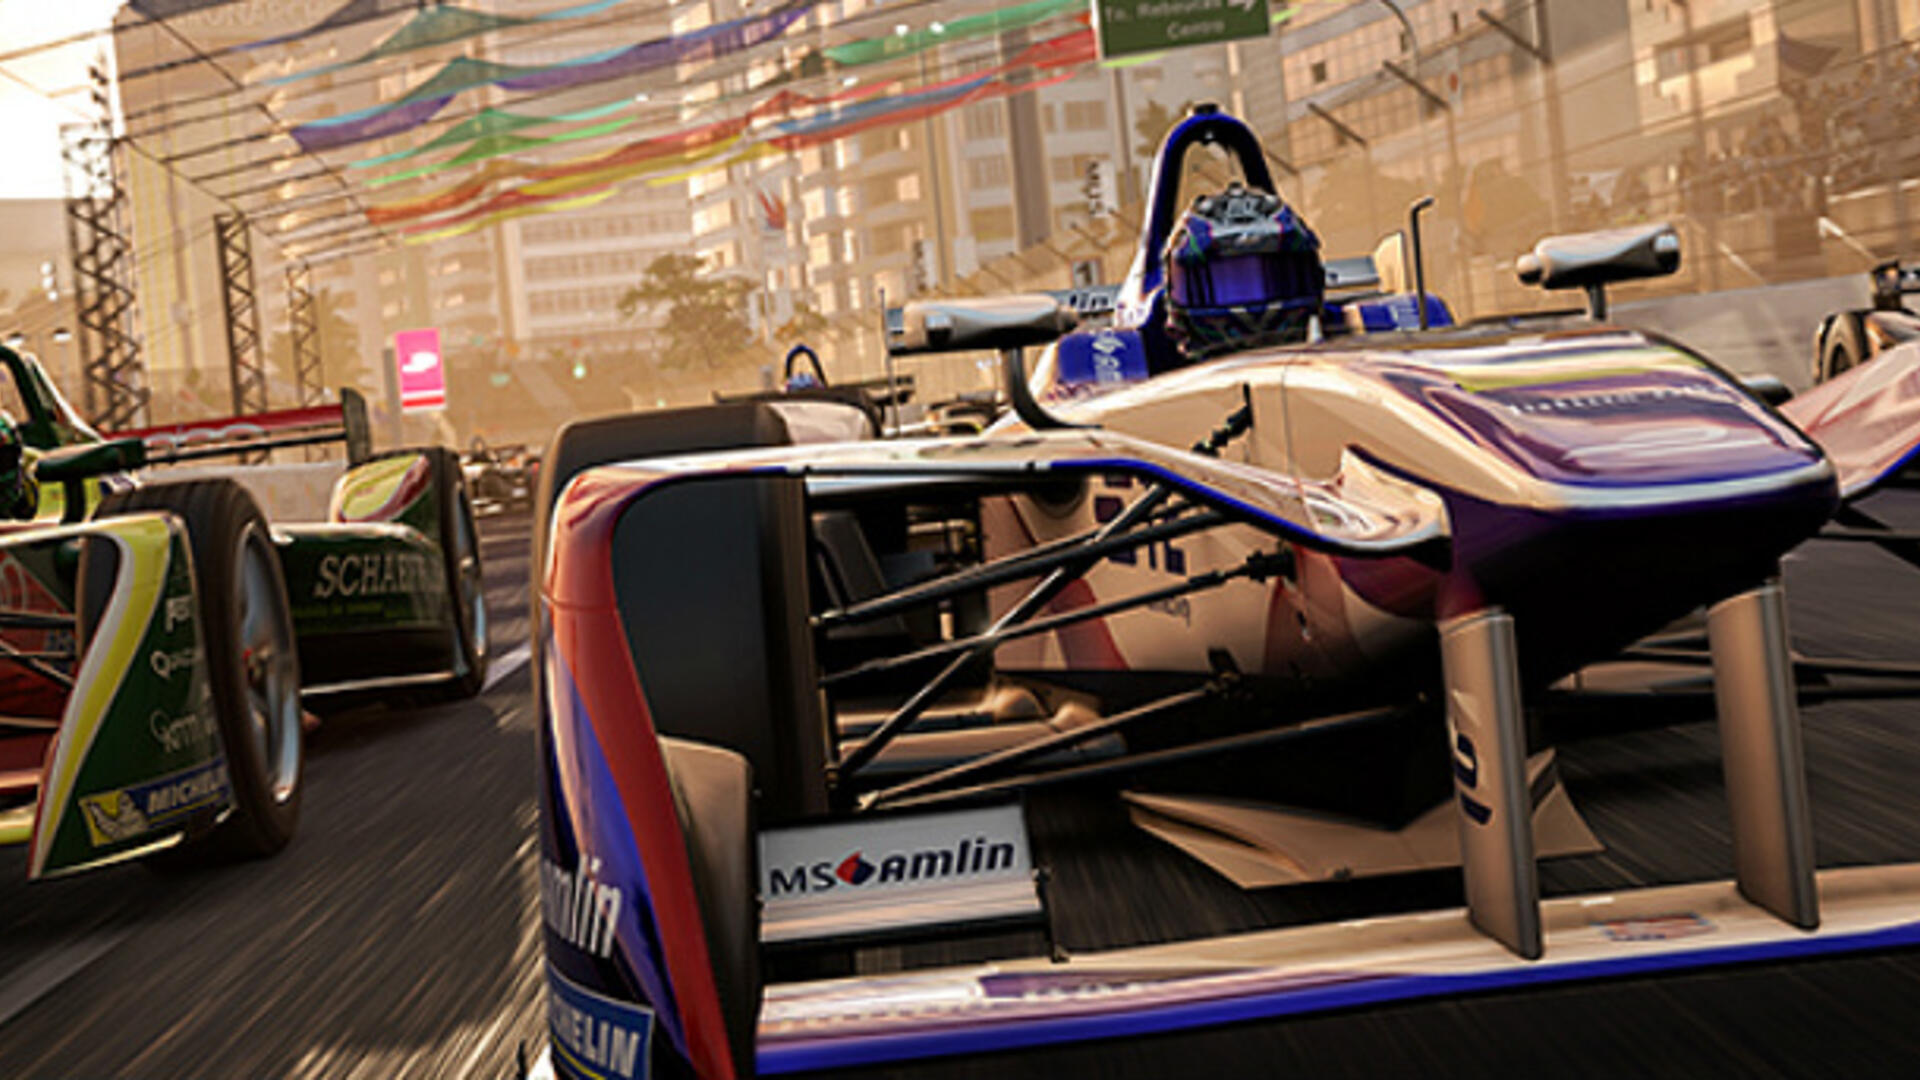 Forza Motorsport 7 Review: A Beautiful Ride, But The Tires Need Some Air